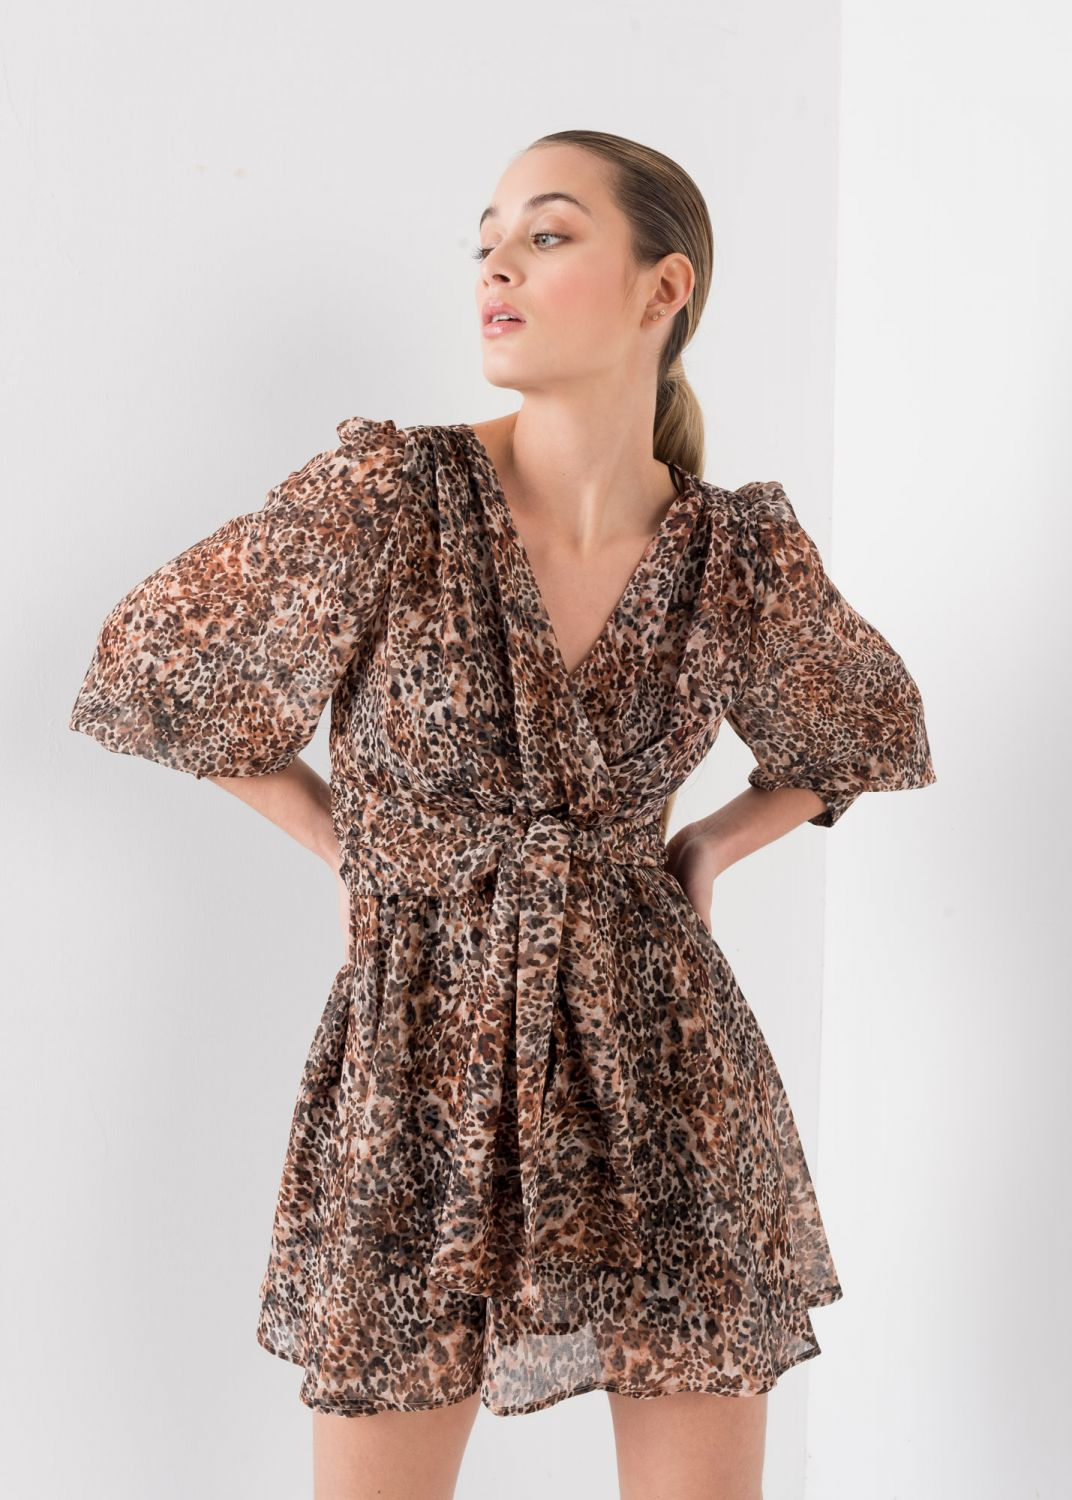 ROBE D'IMPRESSION ANIMALE